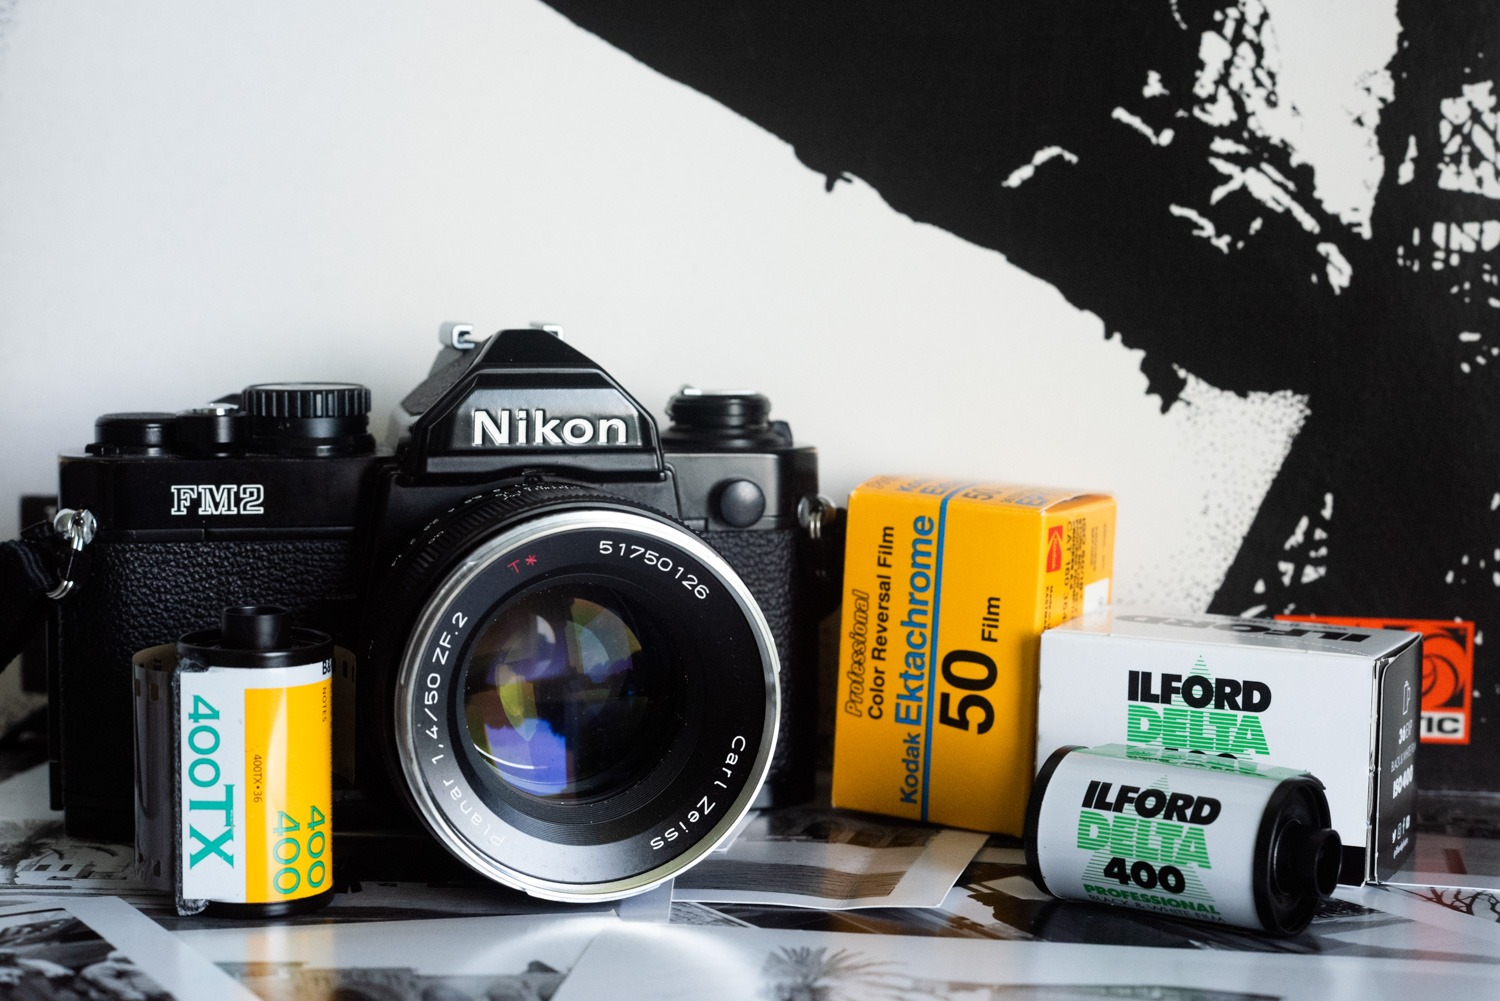 Nikon FM2, Zeiss Planar 50mm f/1.4 and film